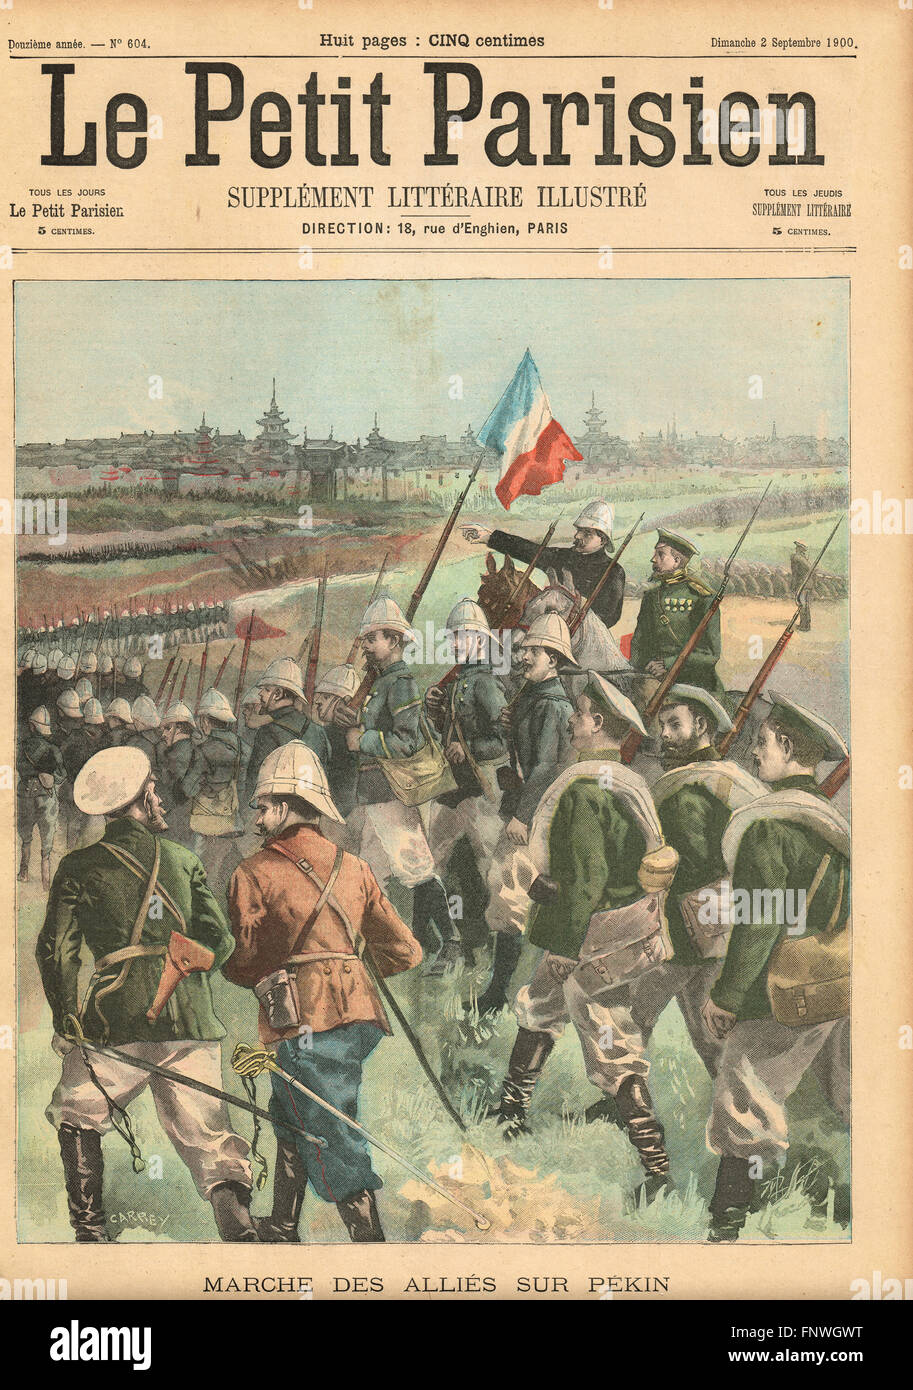 Boxer rebellion Allies march on Peking - Stock Image